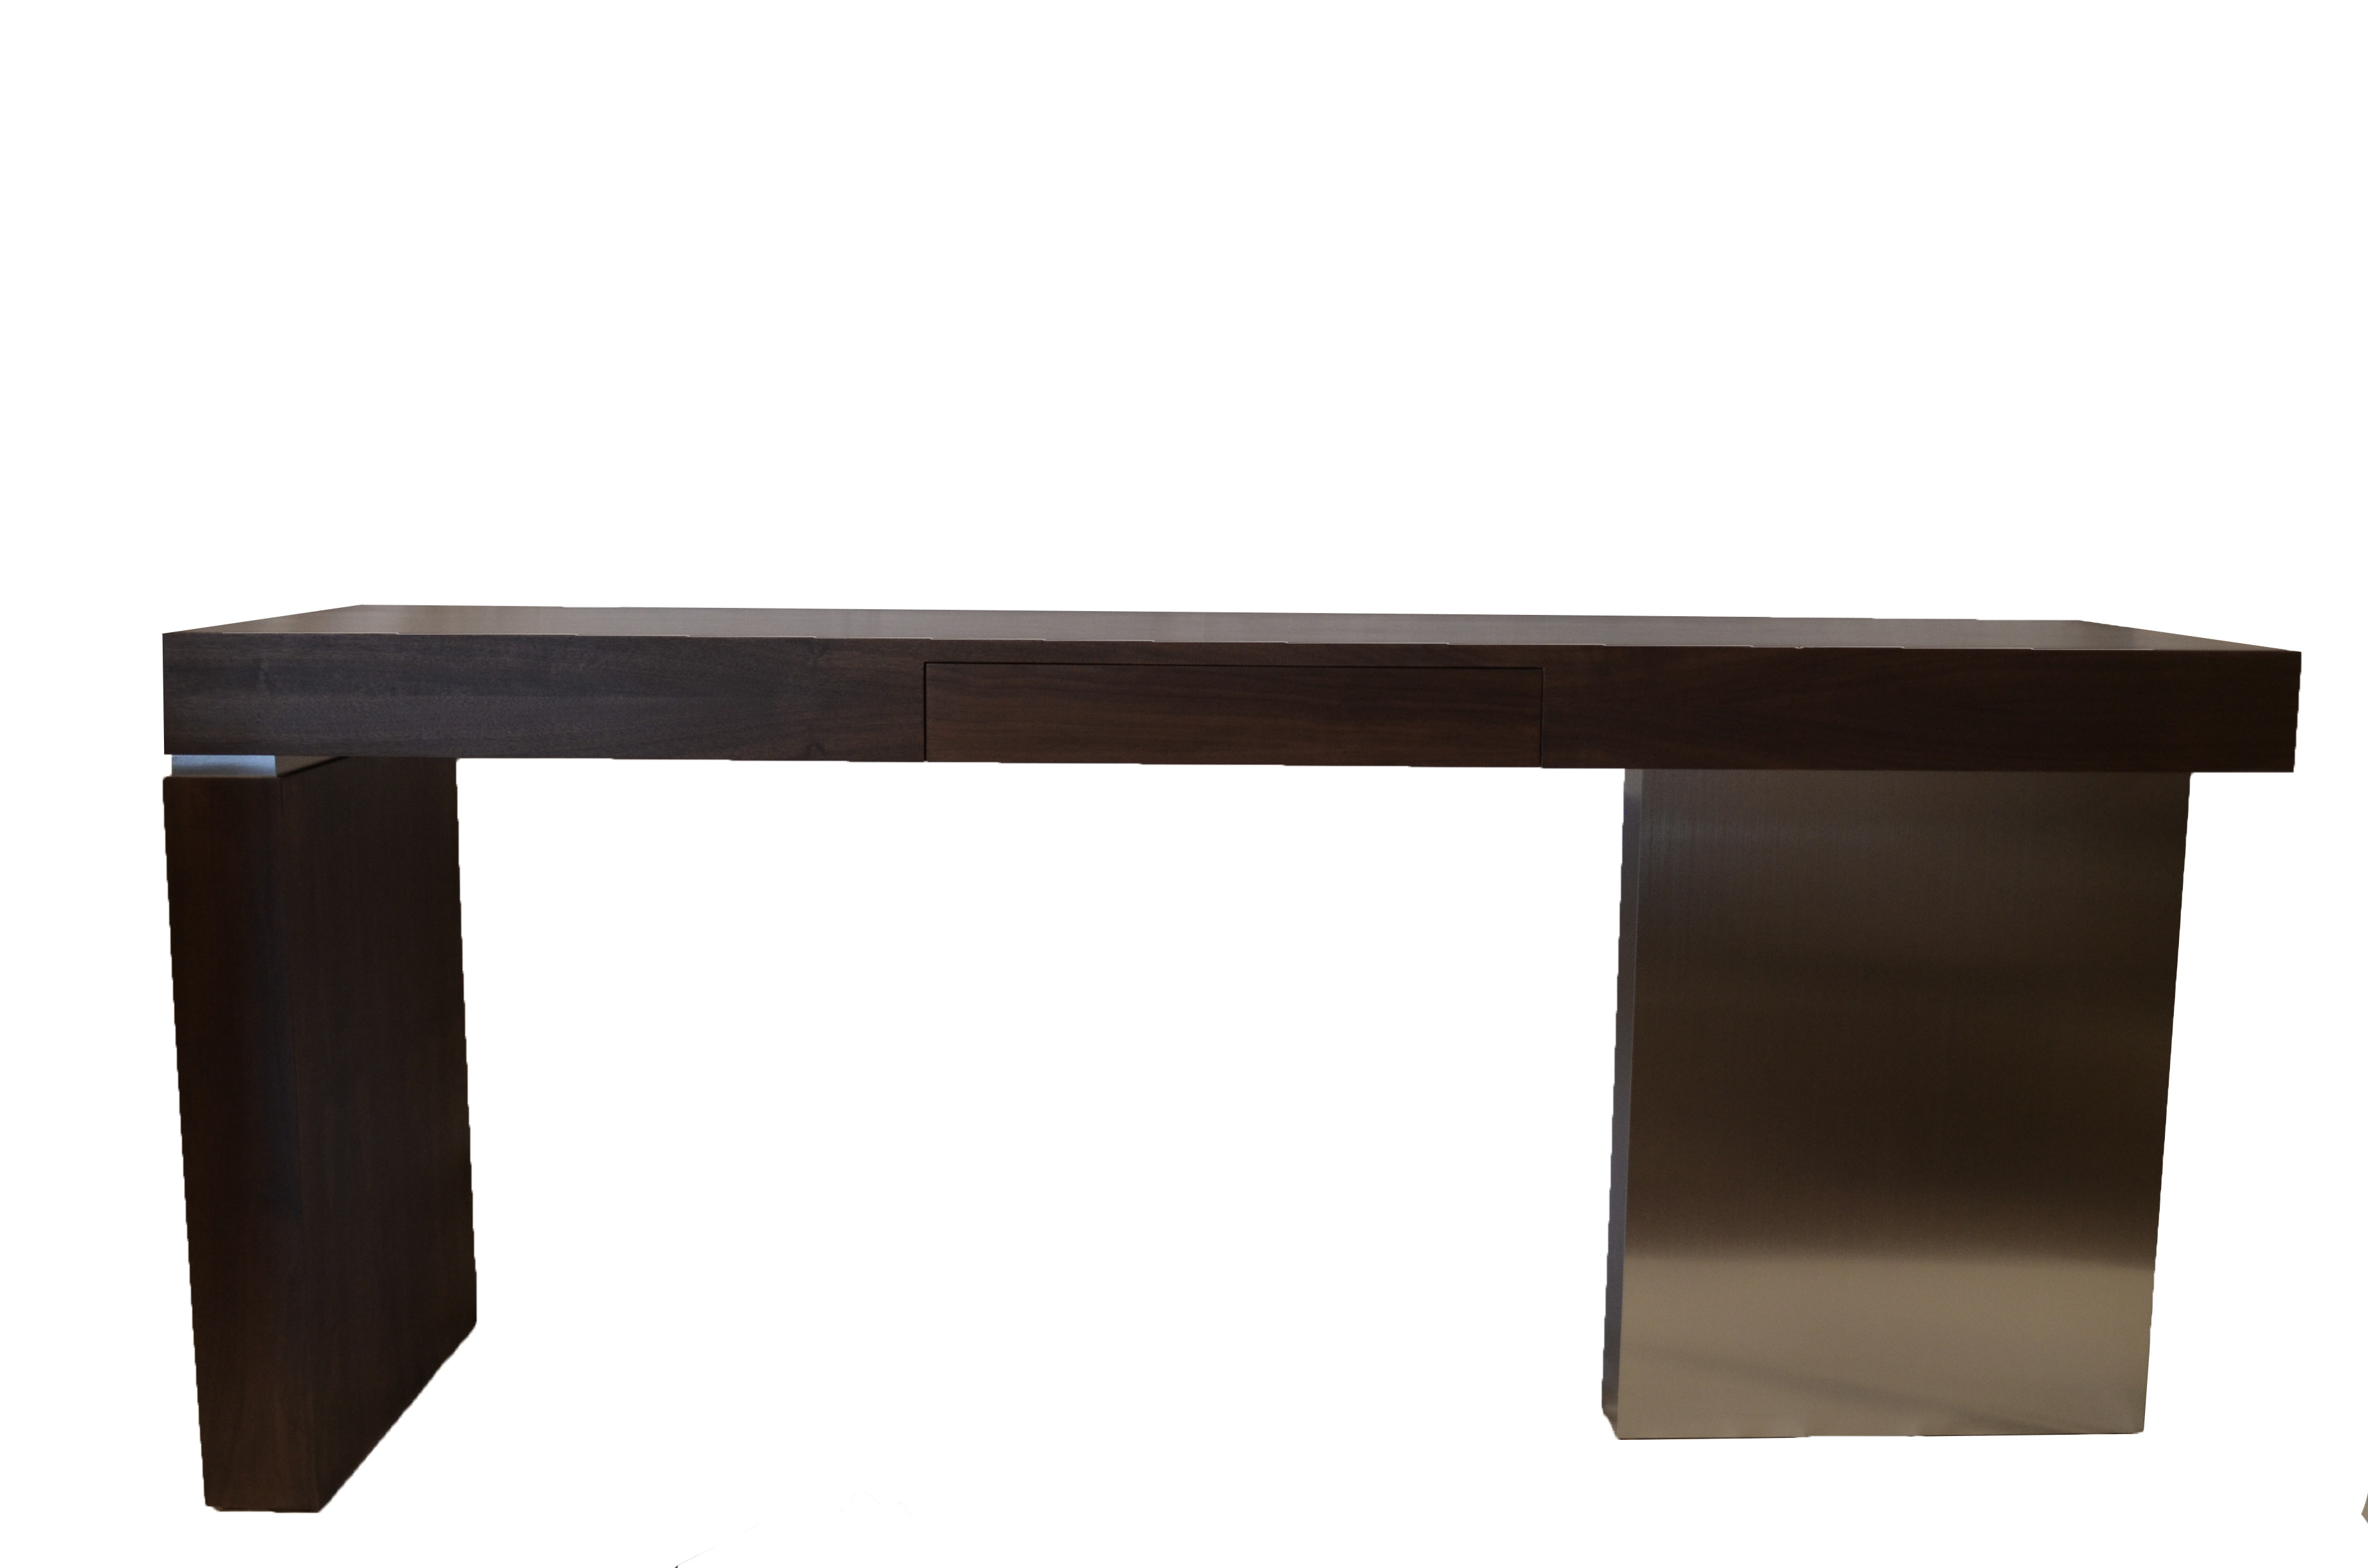 Console Tables Archives - Thingz Contemporary Living inside Archive Grey Console Tables (Image 18 of 30)